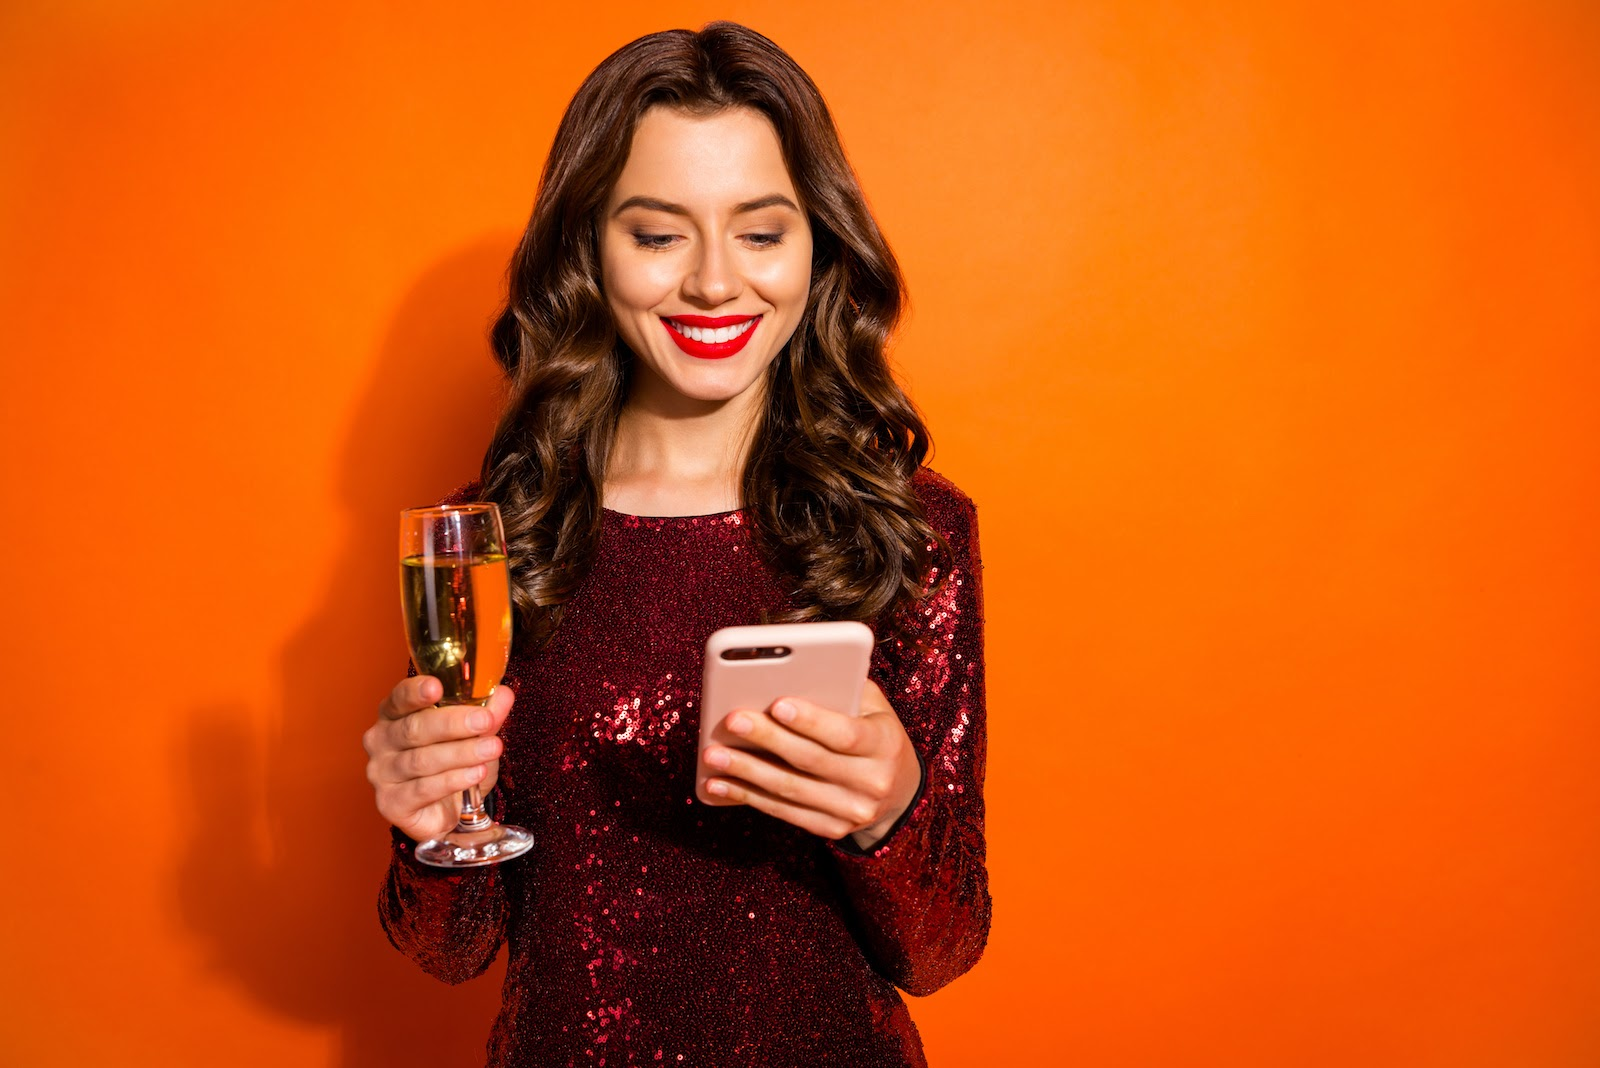 A woman holds champagne, wears a party dress, and looks at her phone for a virtual party